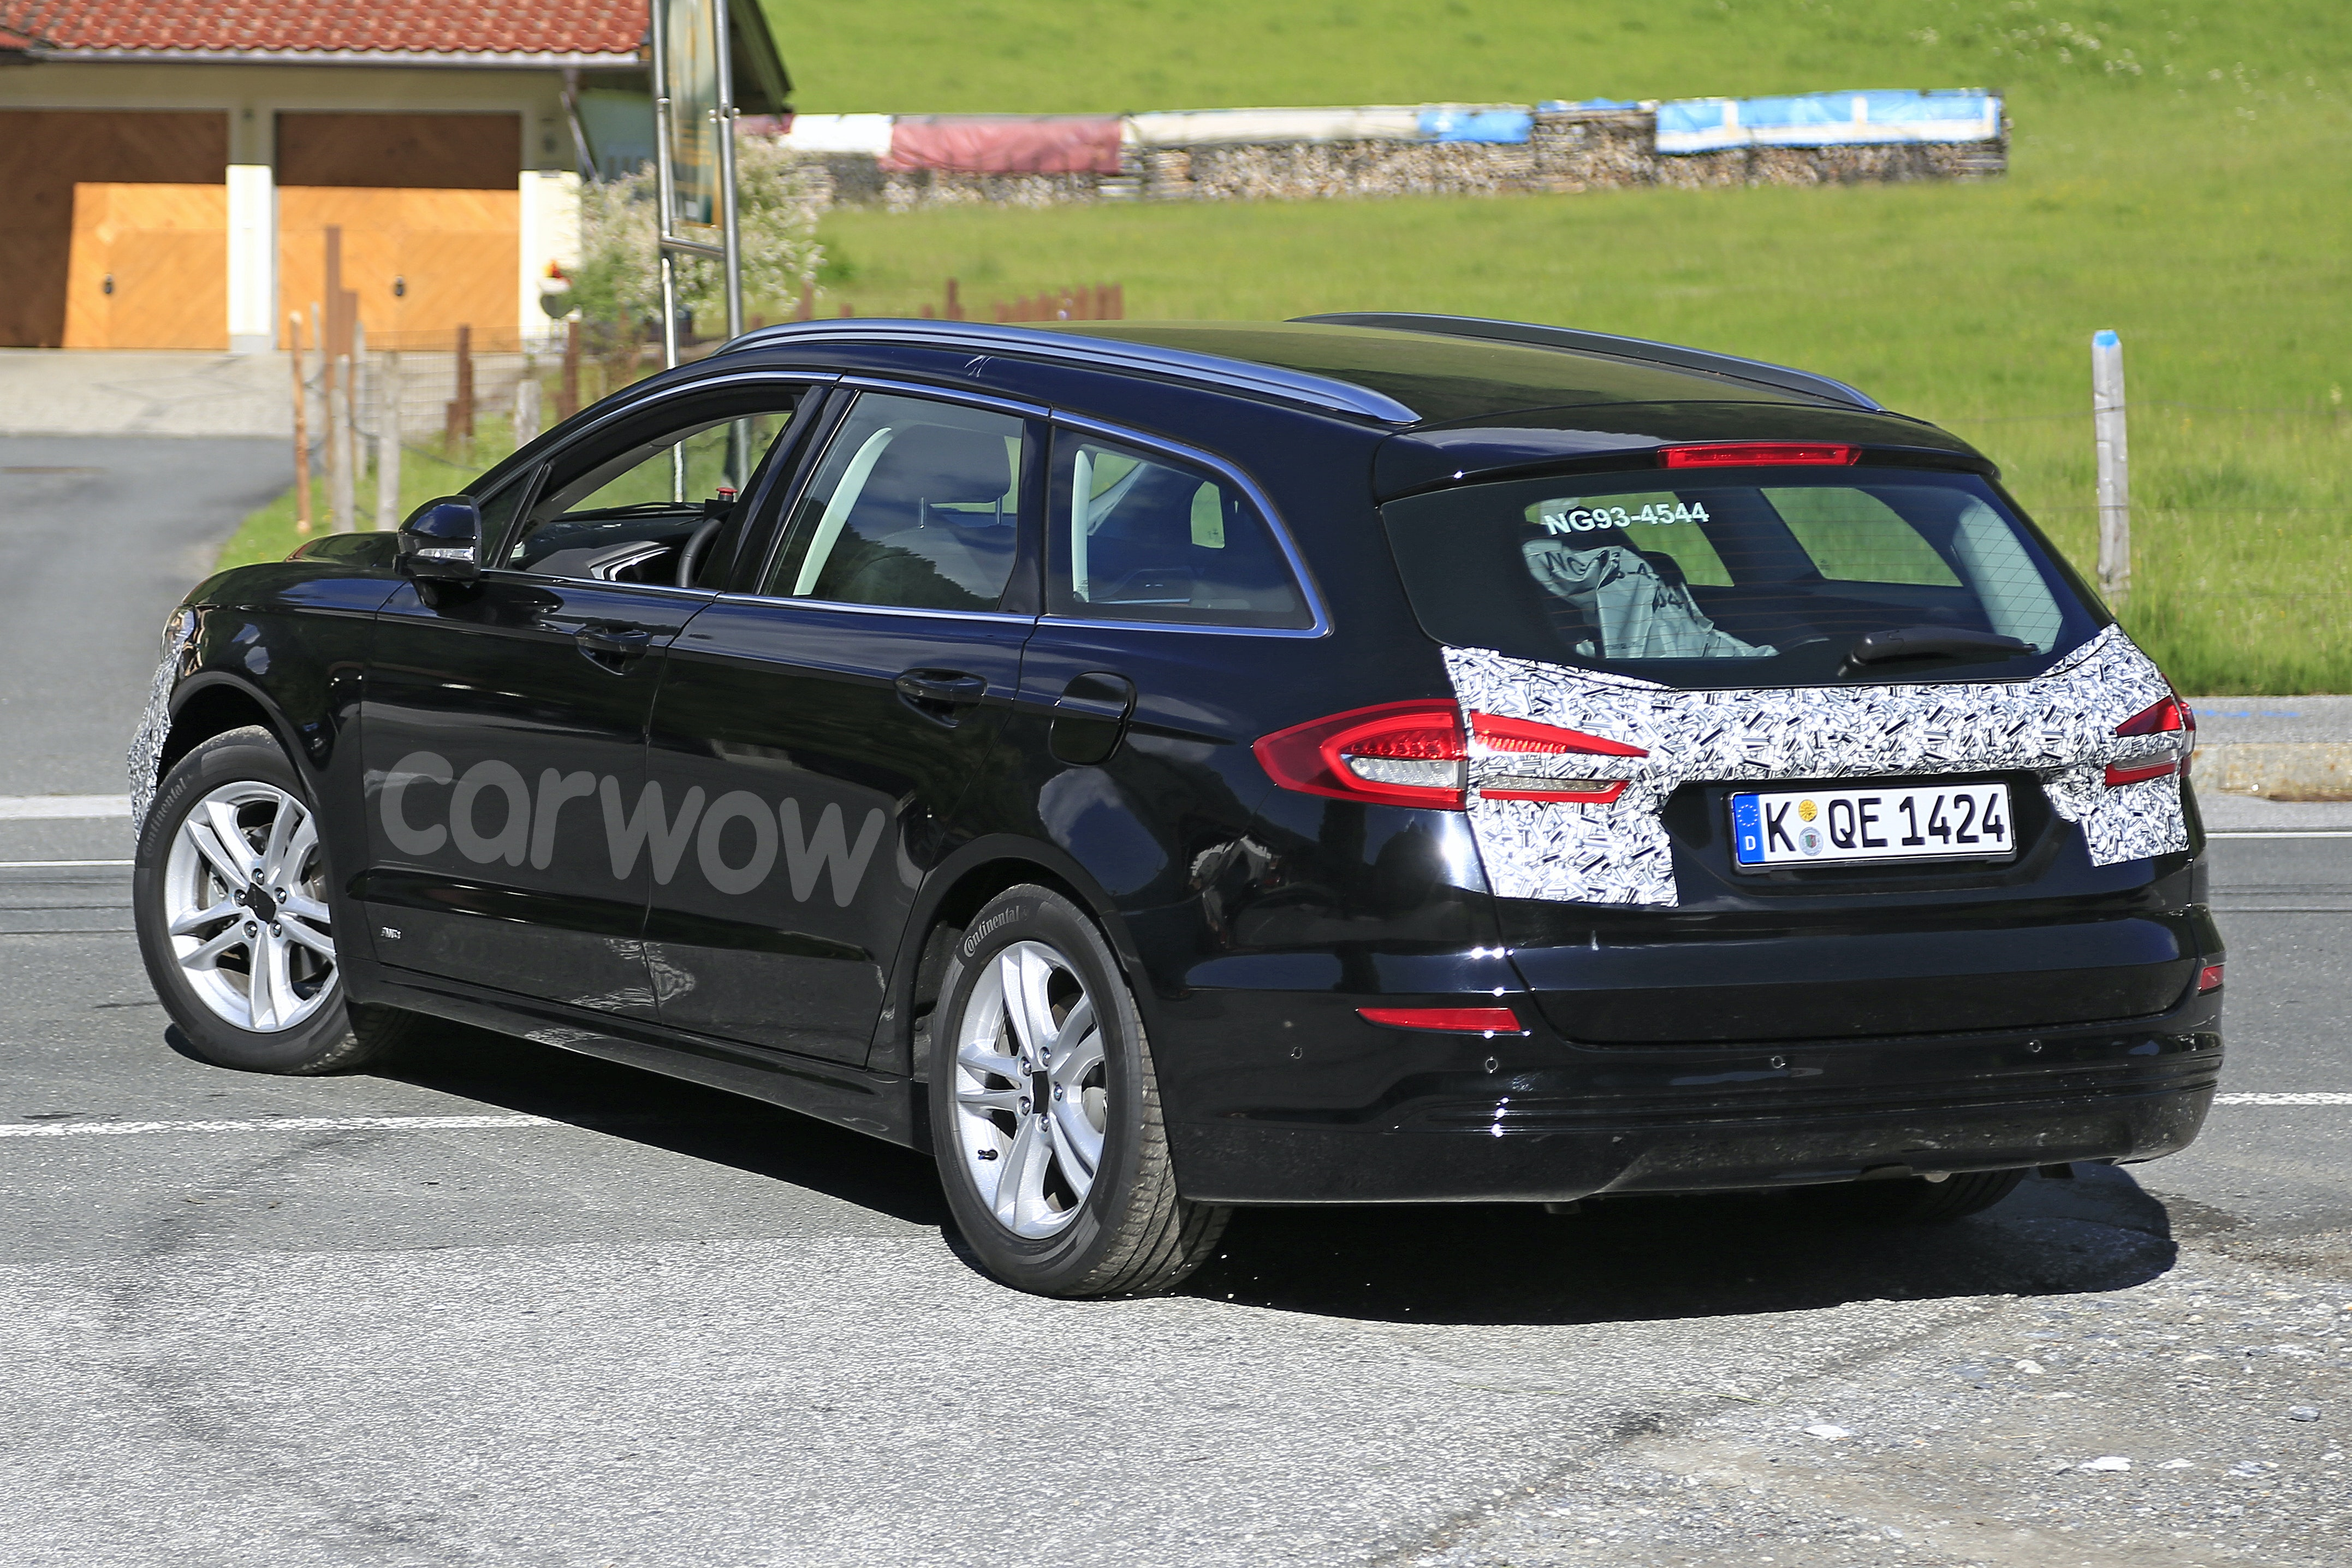 Ford Mondeo 2019 >> 2019 Ford Mondeo | price, specs and release date | carwow